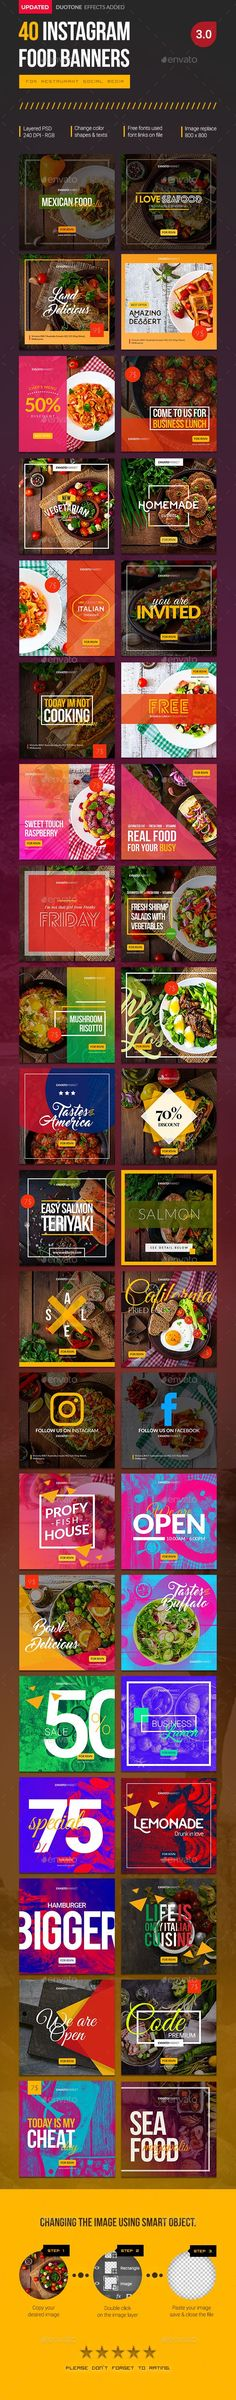 40 Instagram Food Banners - Social Media Web Elements